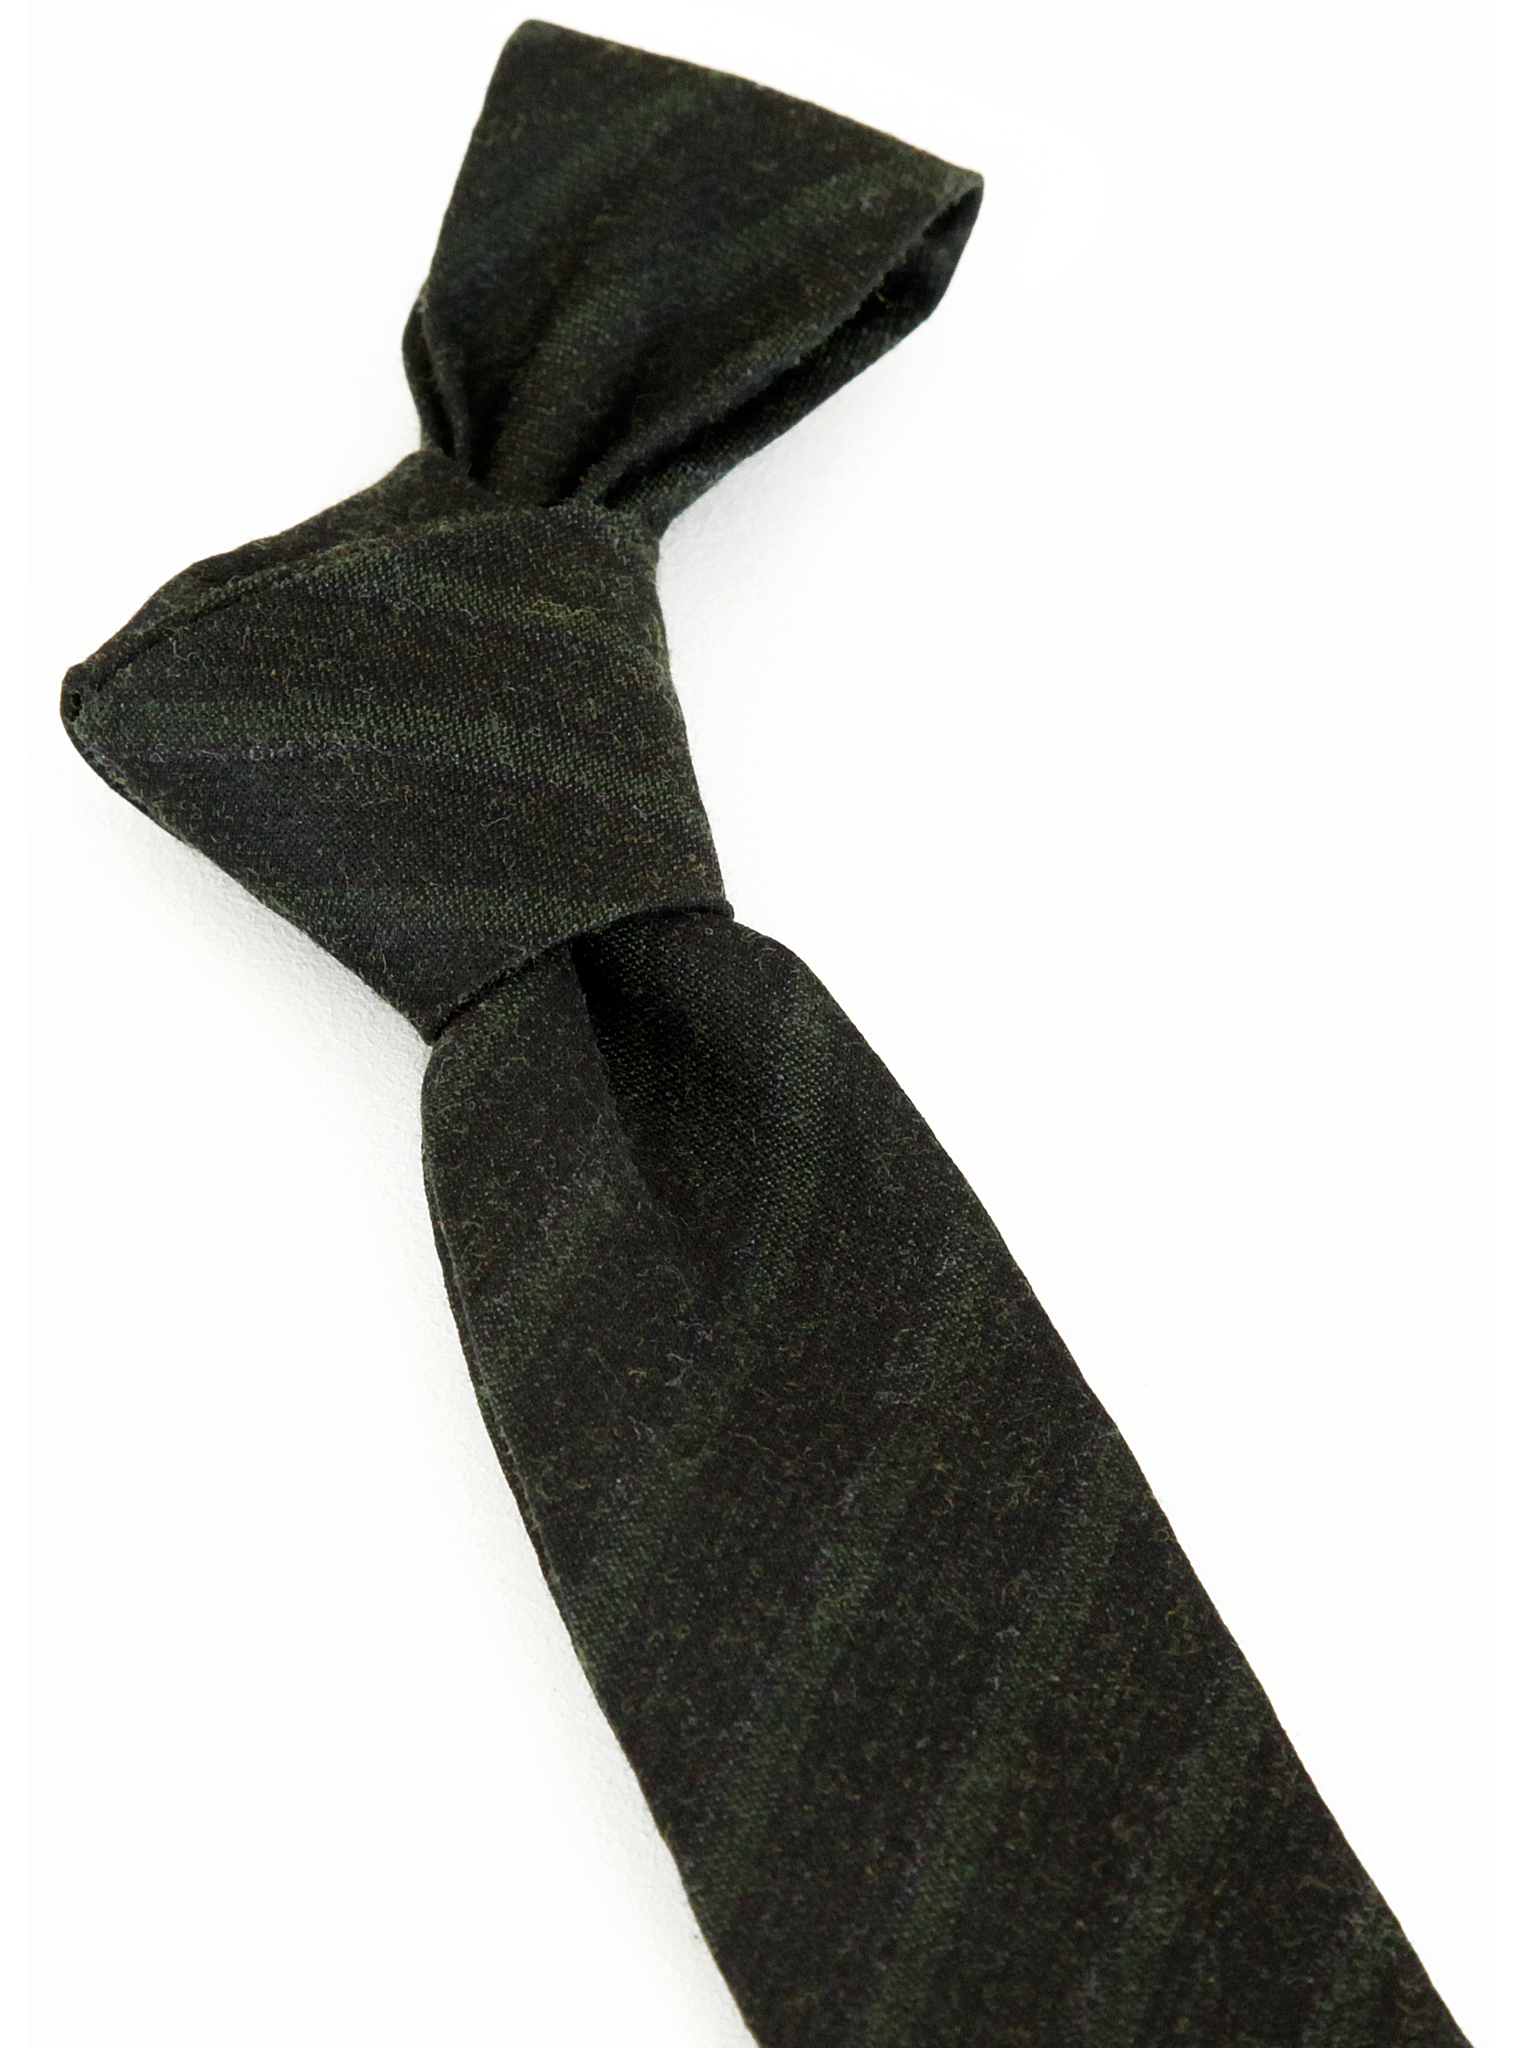 The Ware Necktie